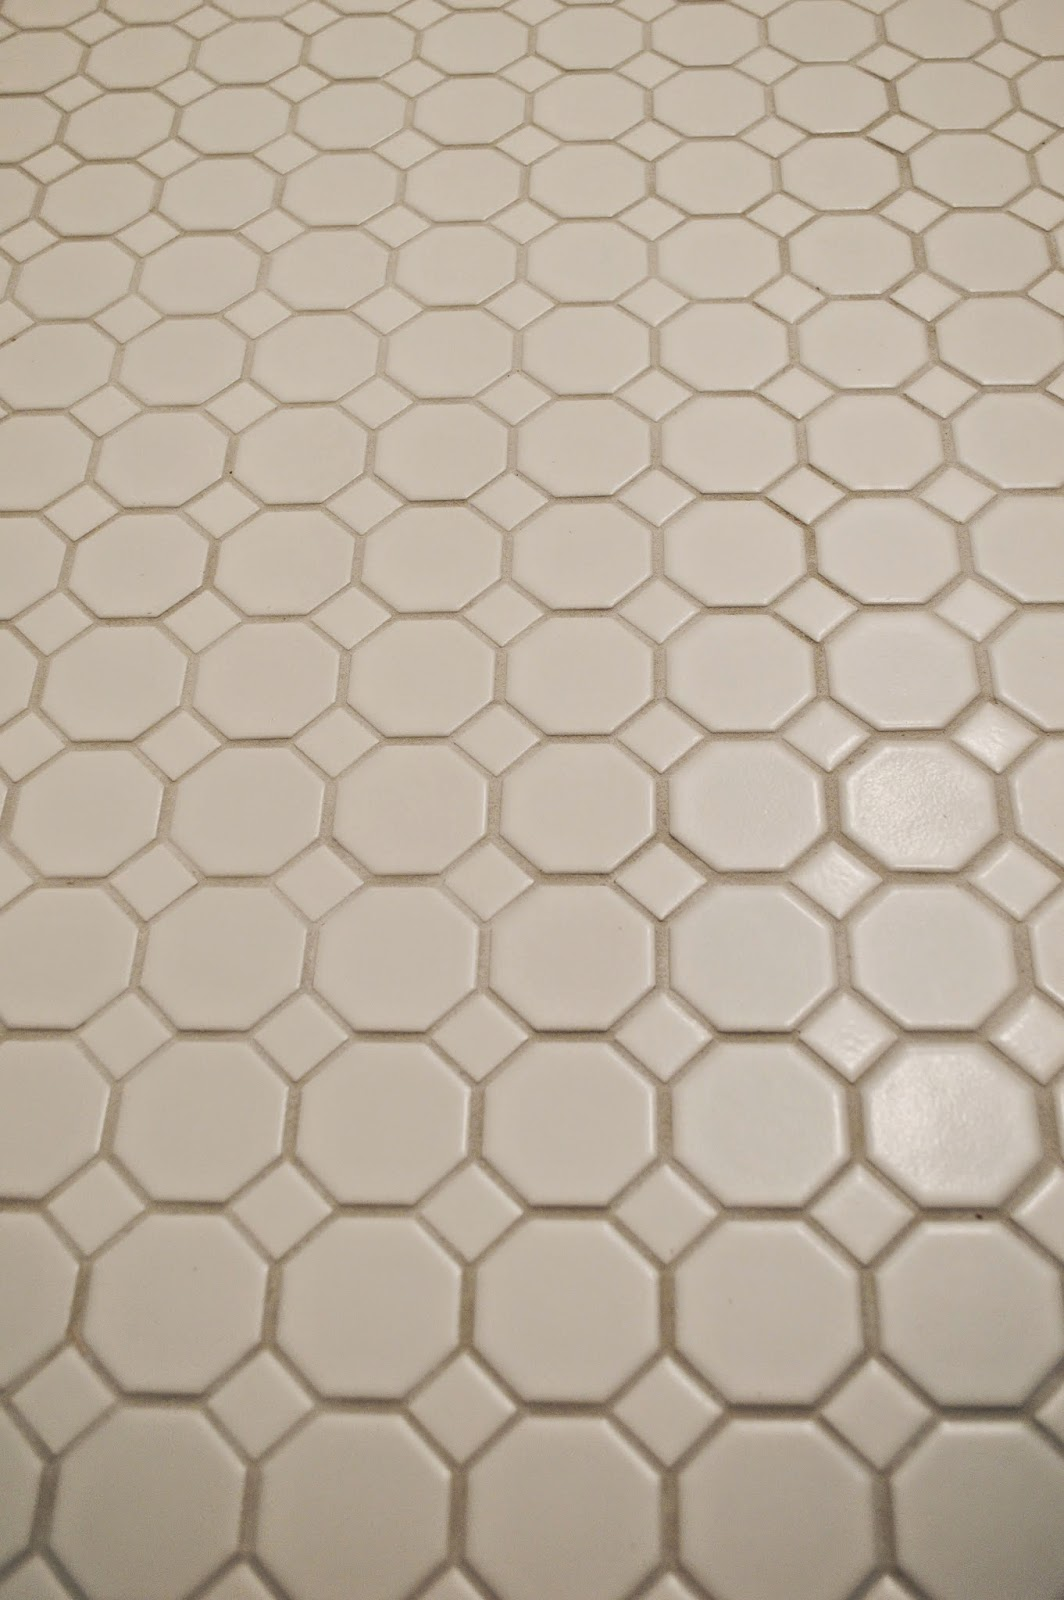 724 south house my new bathroom obsession the floor tile the gray contrasting with the white tile really shows off and compliments the design and i dont have to worry about dirt getting in the grout lines dailygadgetfo Gallery